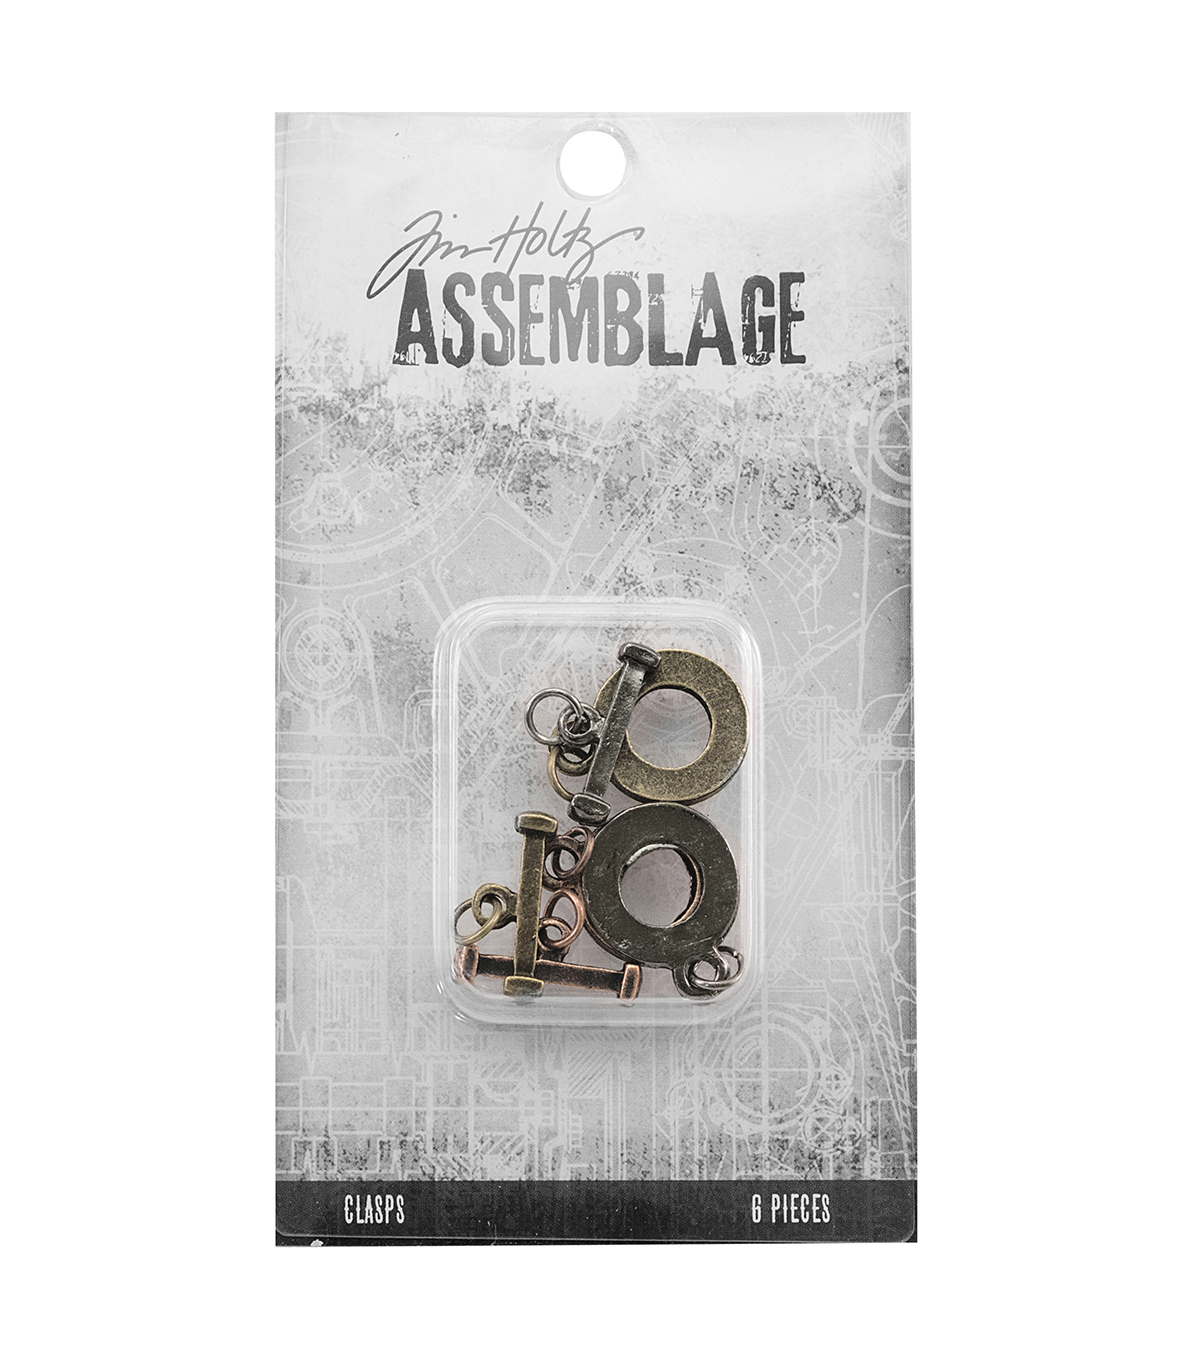 Tim Holtz Assemblage Pack of 6 Flat Toggles Clasps